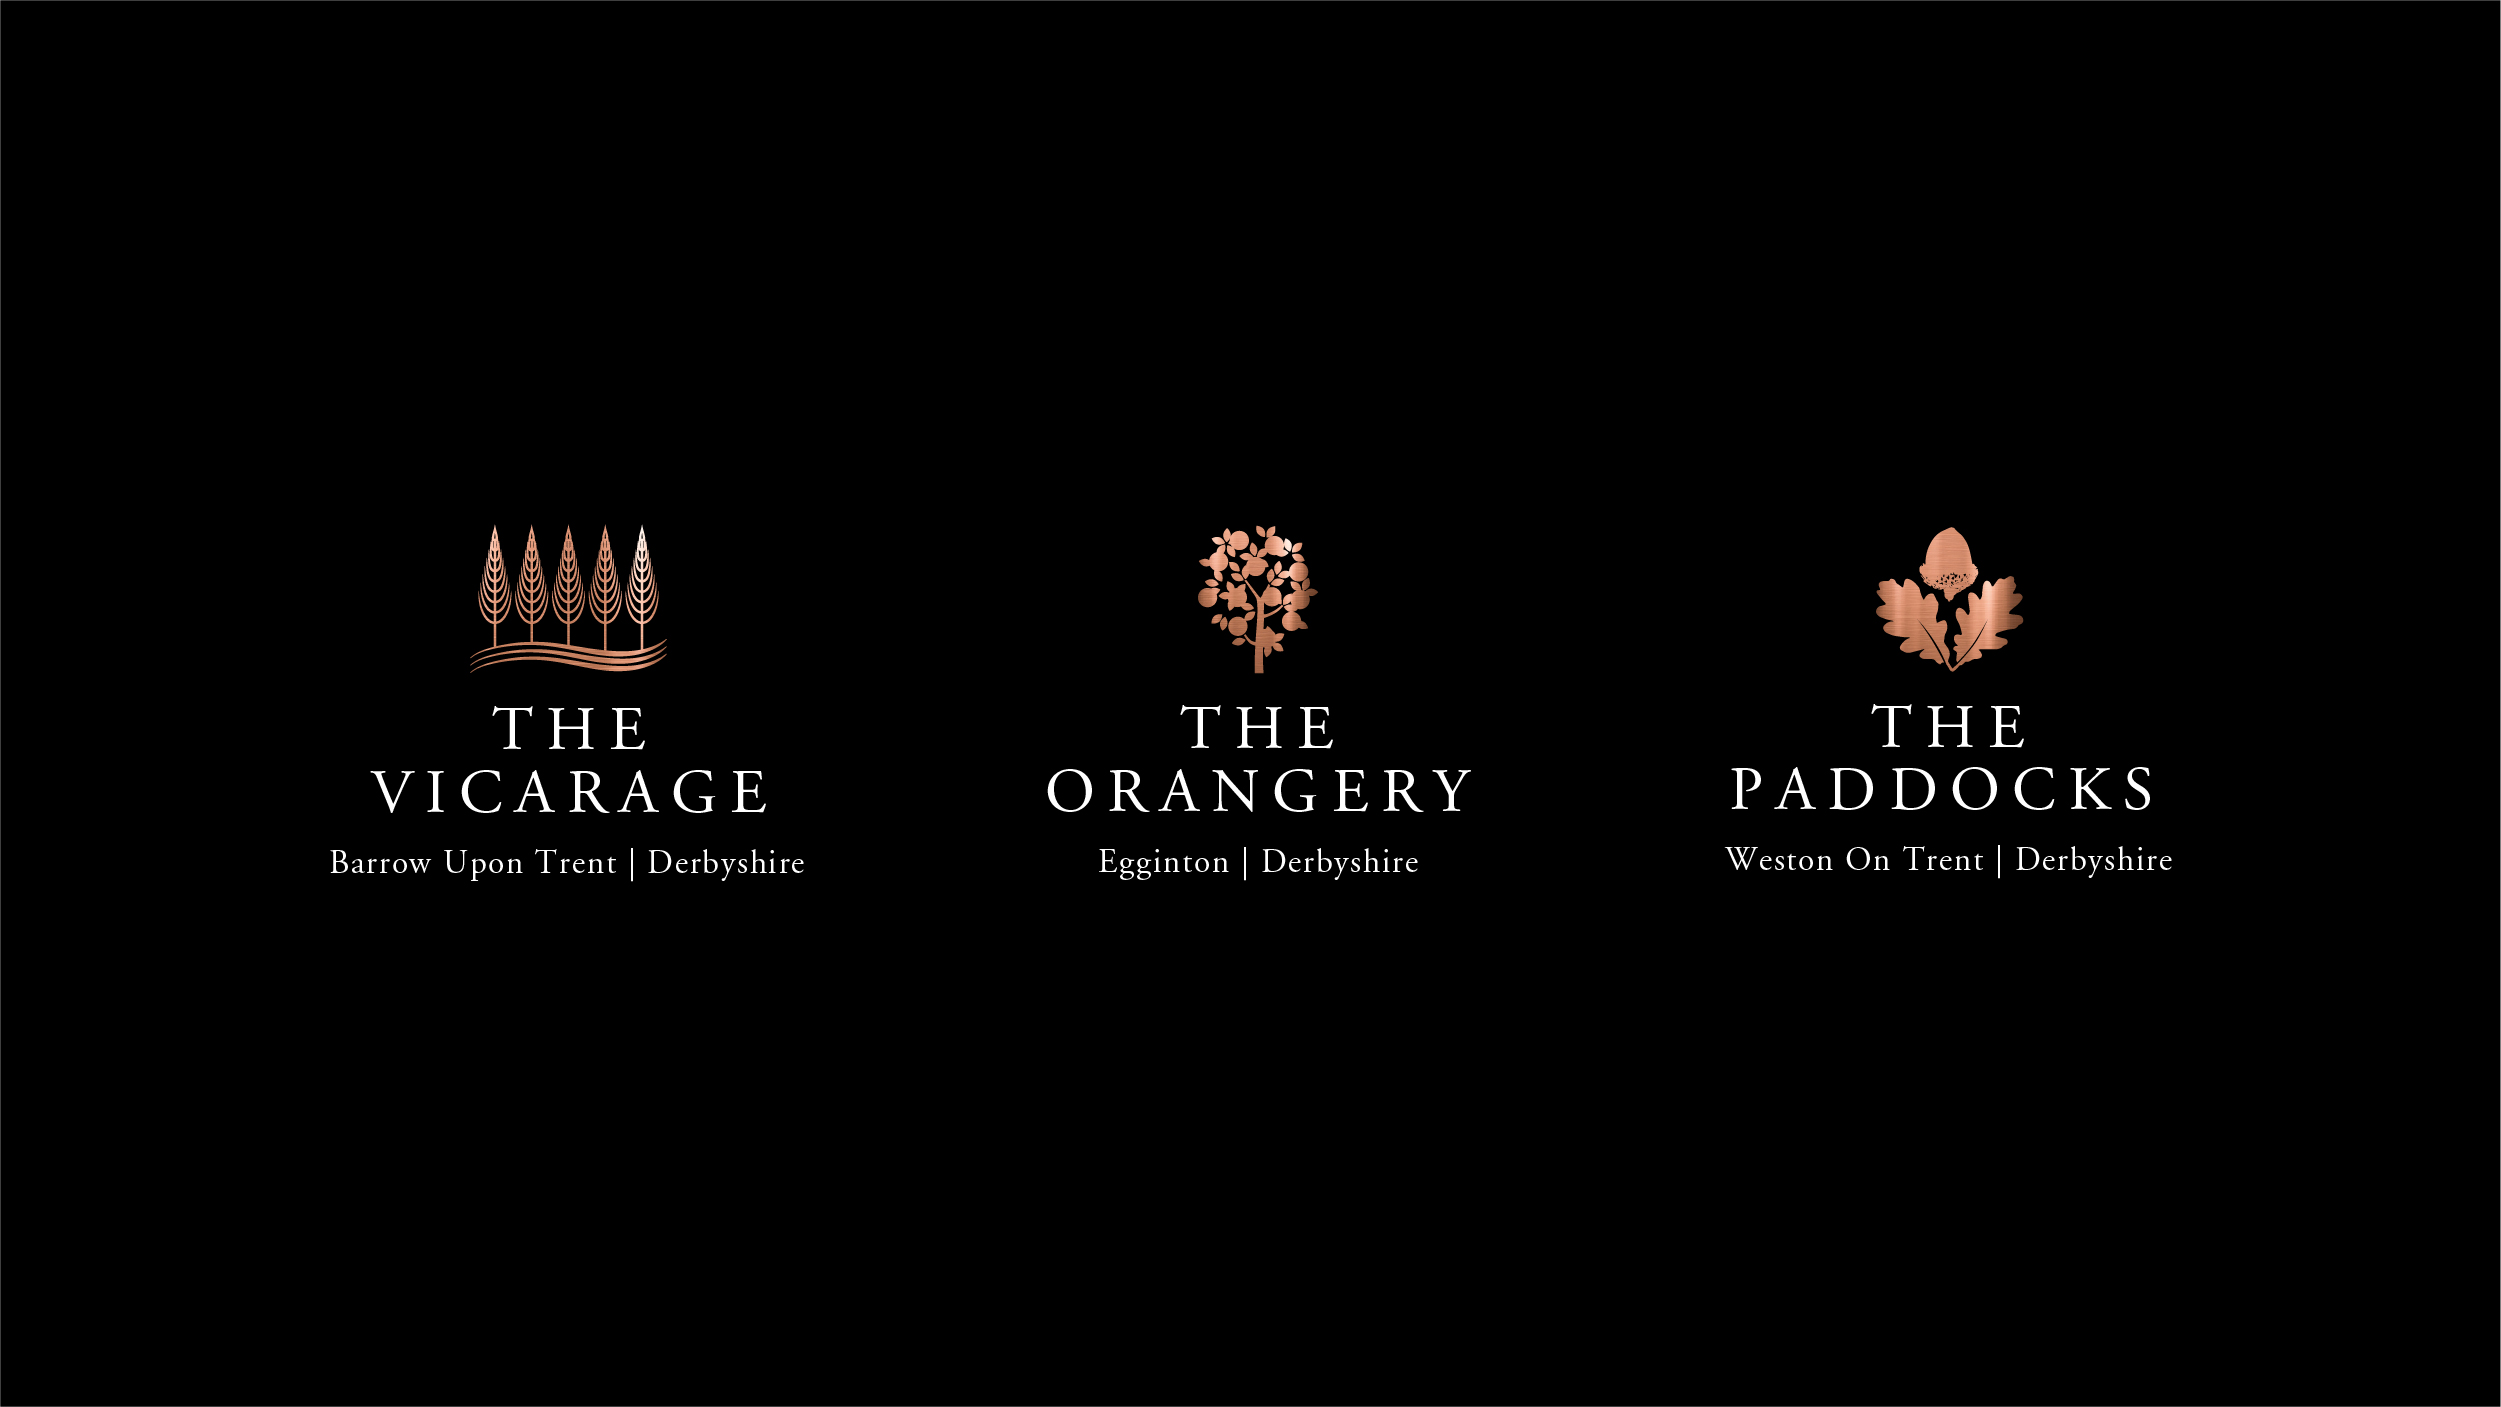 The Vicarage The Orangery The Paddocks logos